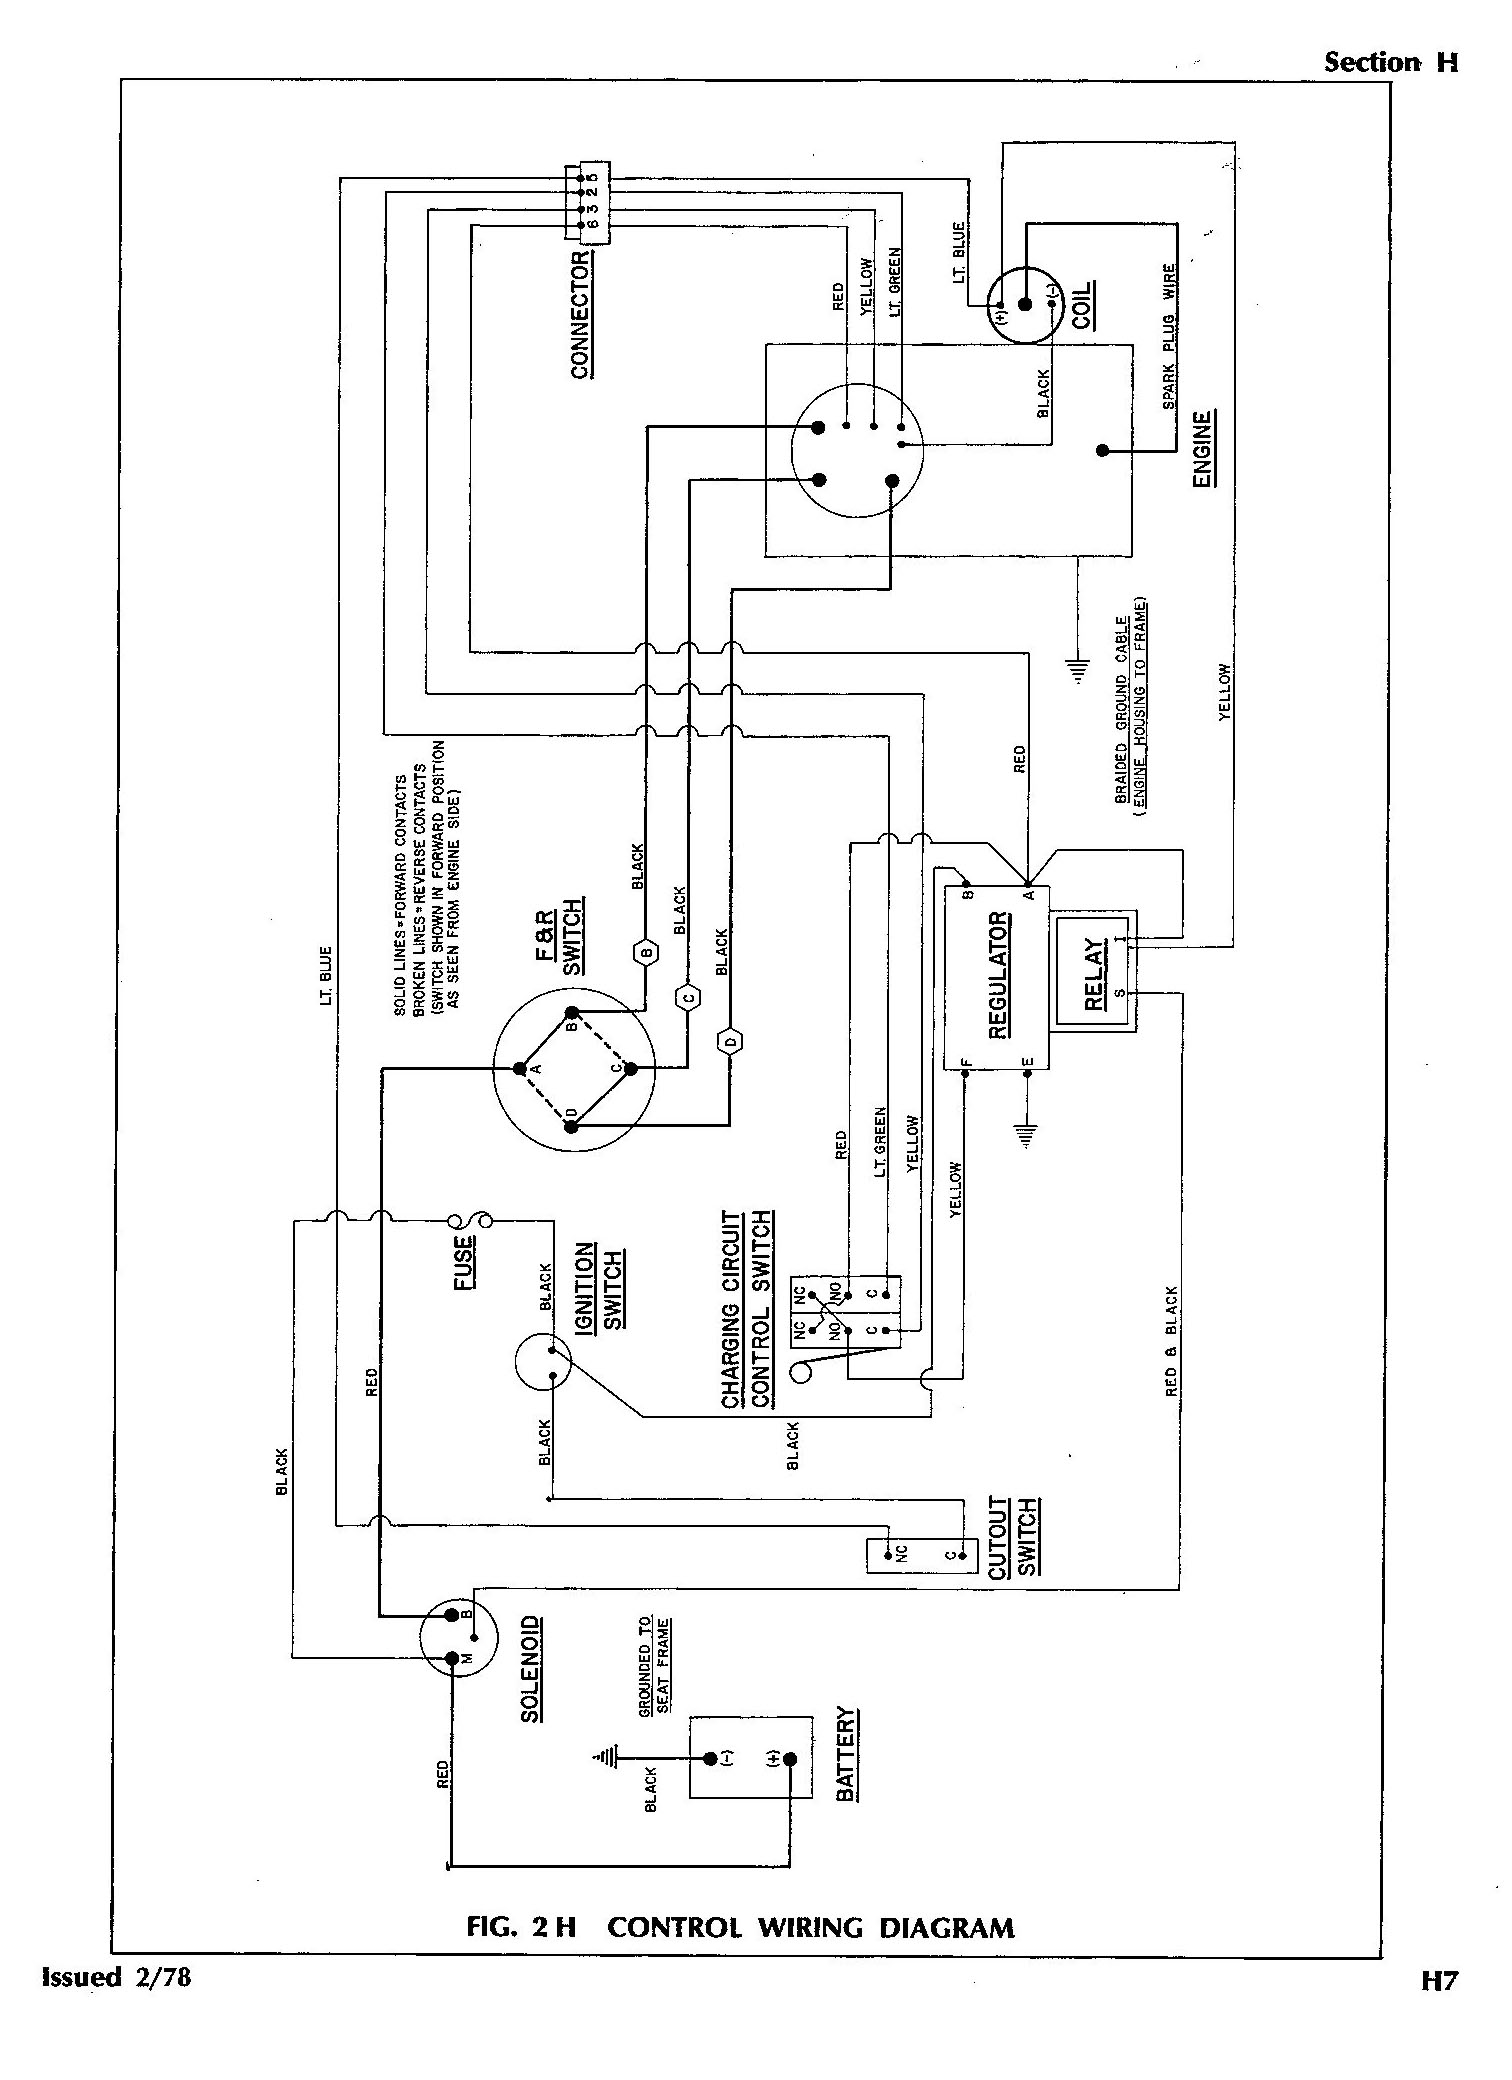 ezgo wiring diagram gas golf cart pontiac sunfire stereo i have a 1980 with 244cc robin 2 stroke